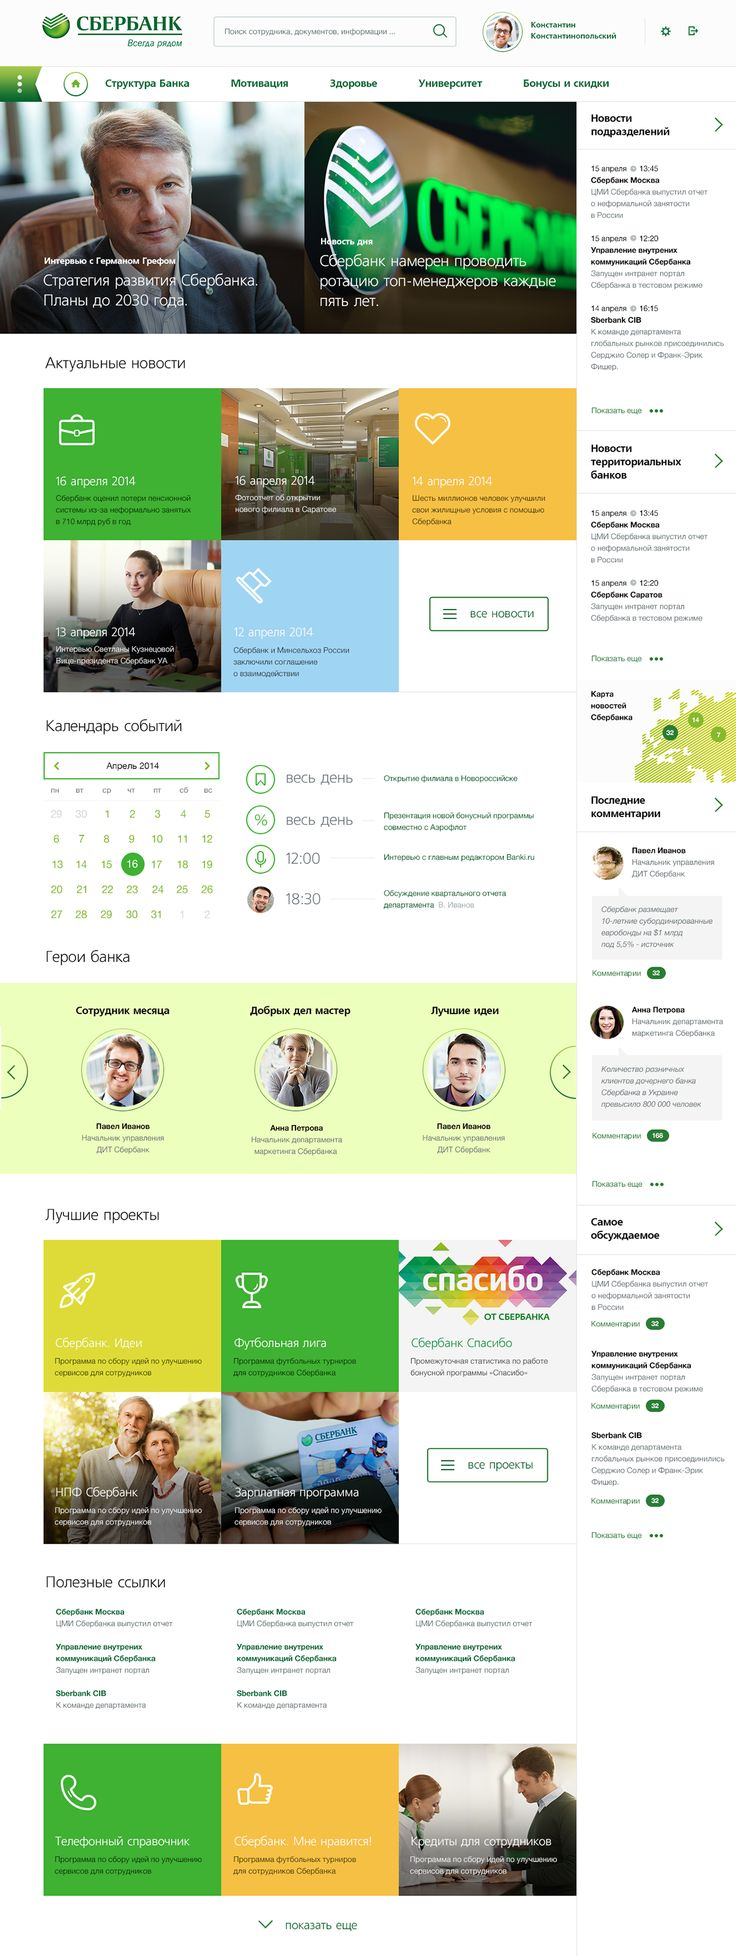 25 best Intranet images on Pinterest | Bootstrap template ...